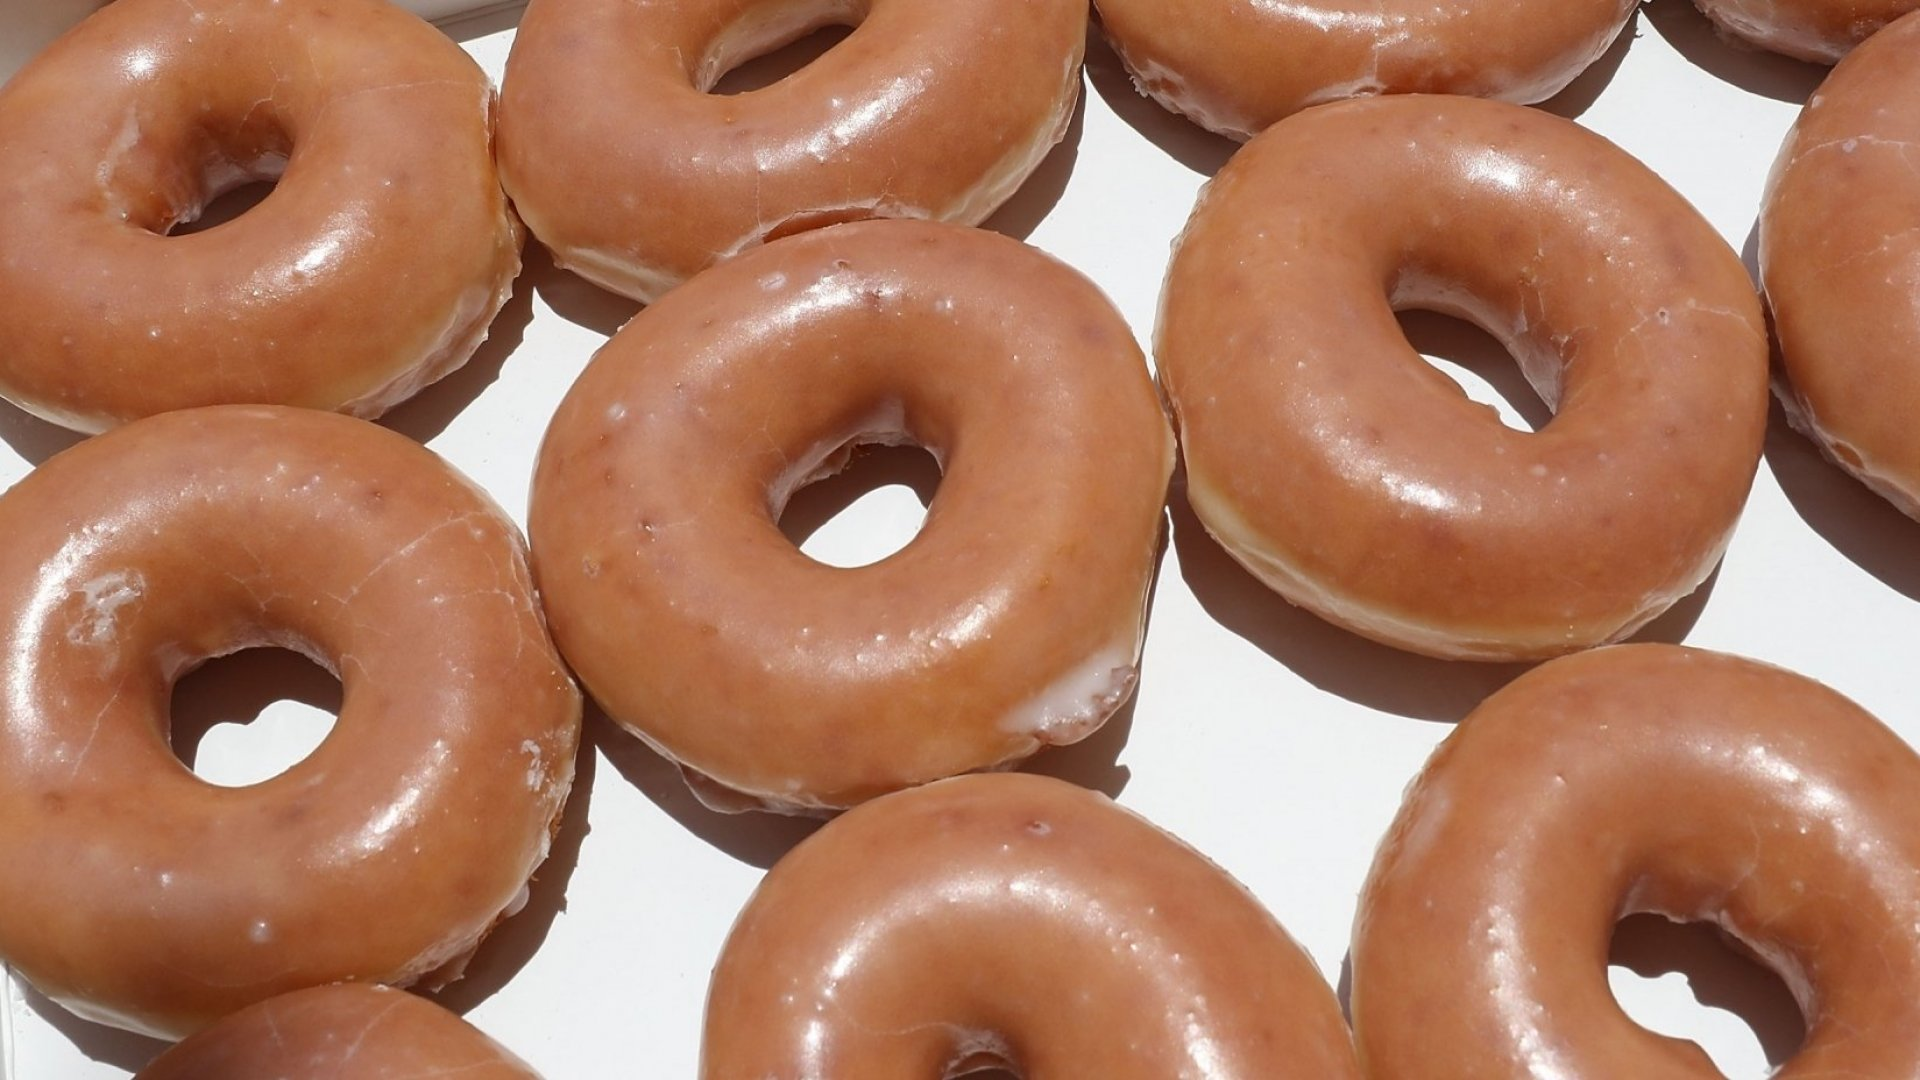 Krispy Kreme Ordered a Student to Stop Reselling Its Doughnuts. His  Response Is a Master Class in Emotional Intelligence | Inc.com